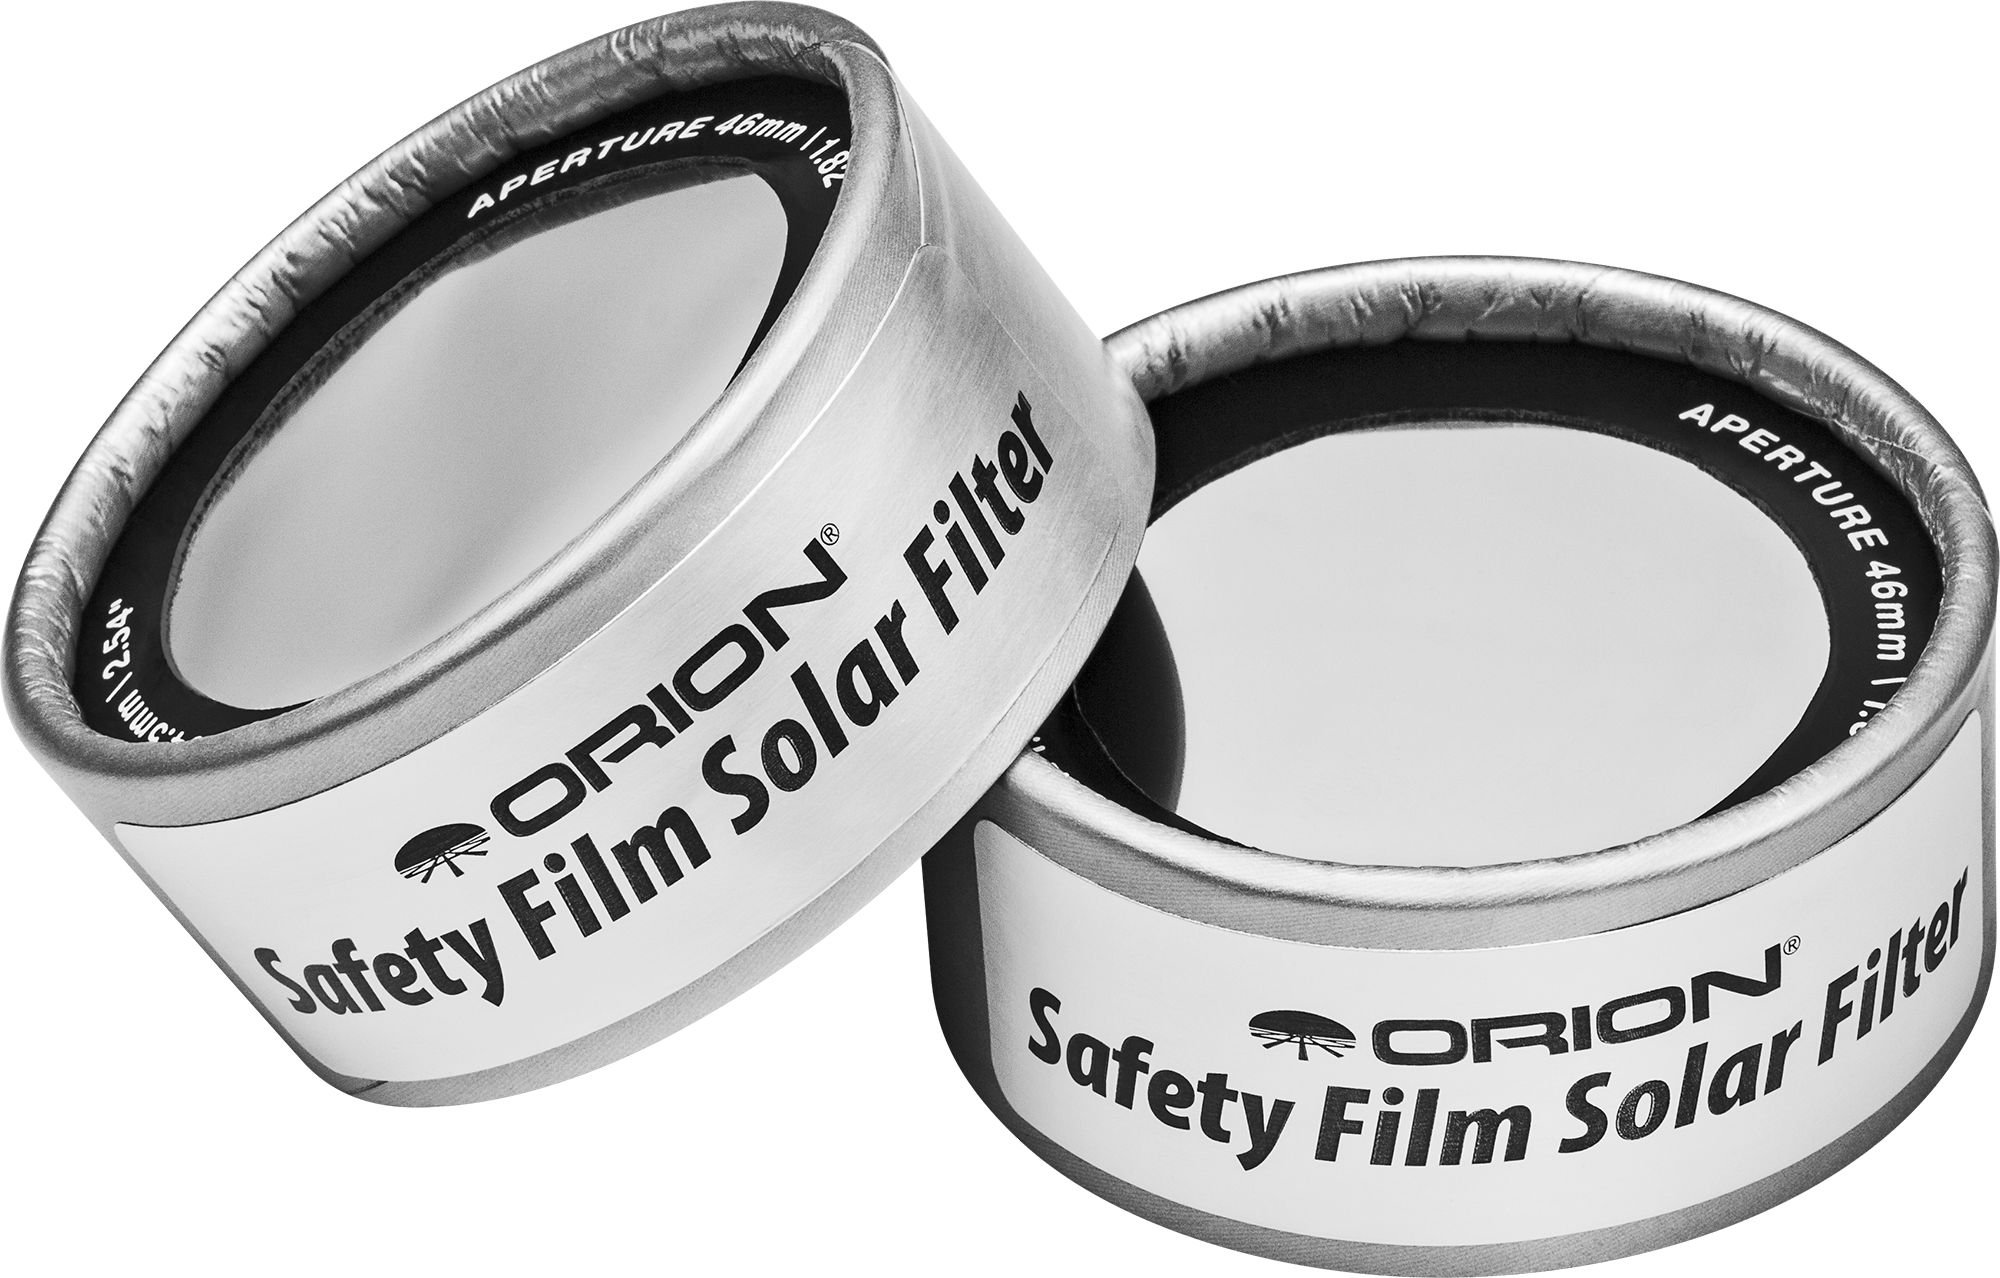 2.54 inch ID Set of Orion E-Series Solar Filters for Binoculars